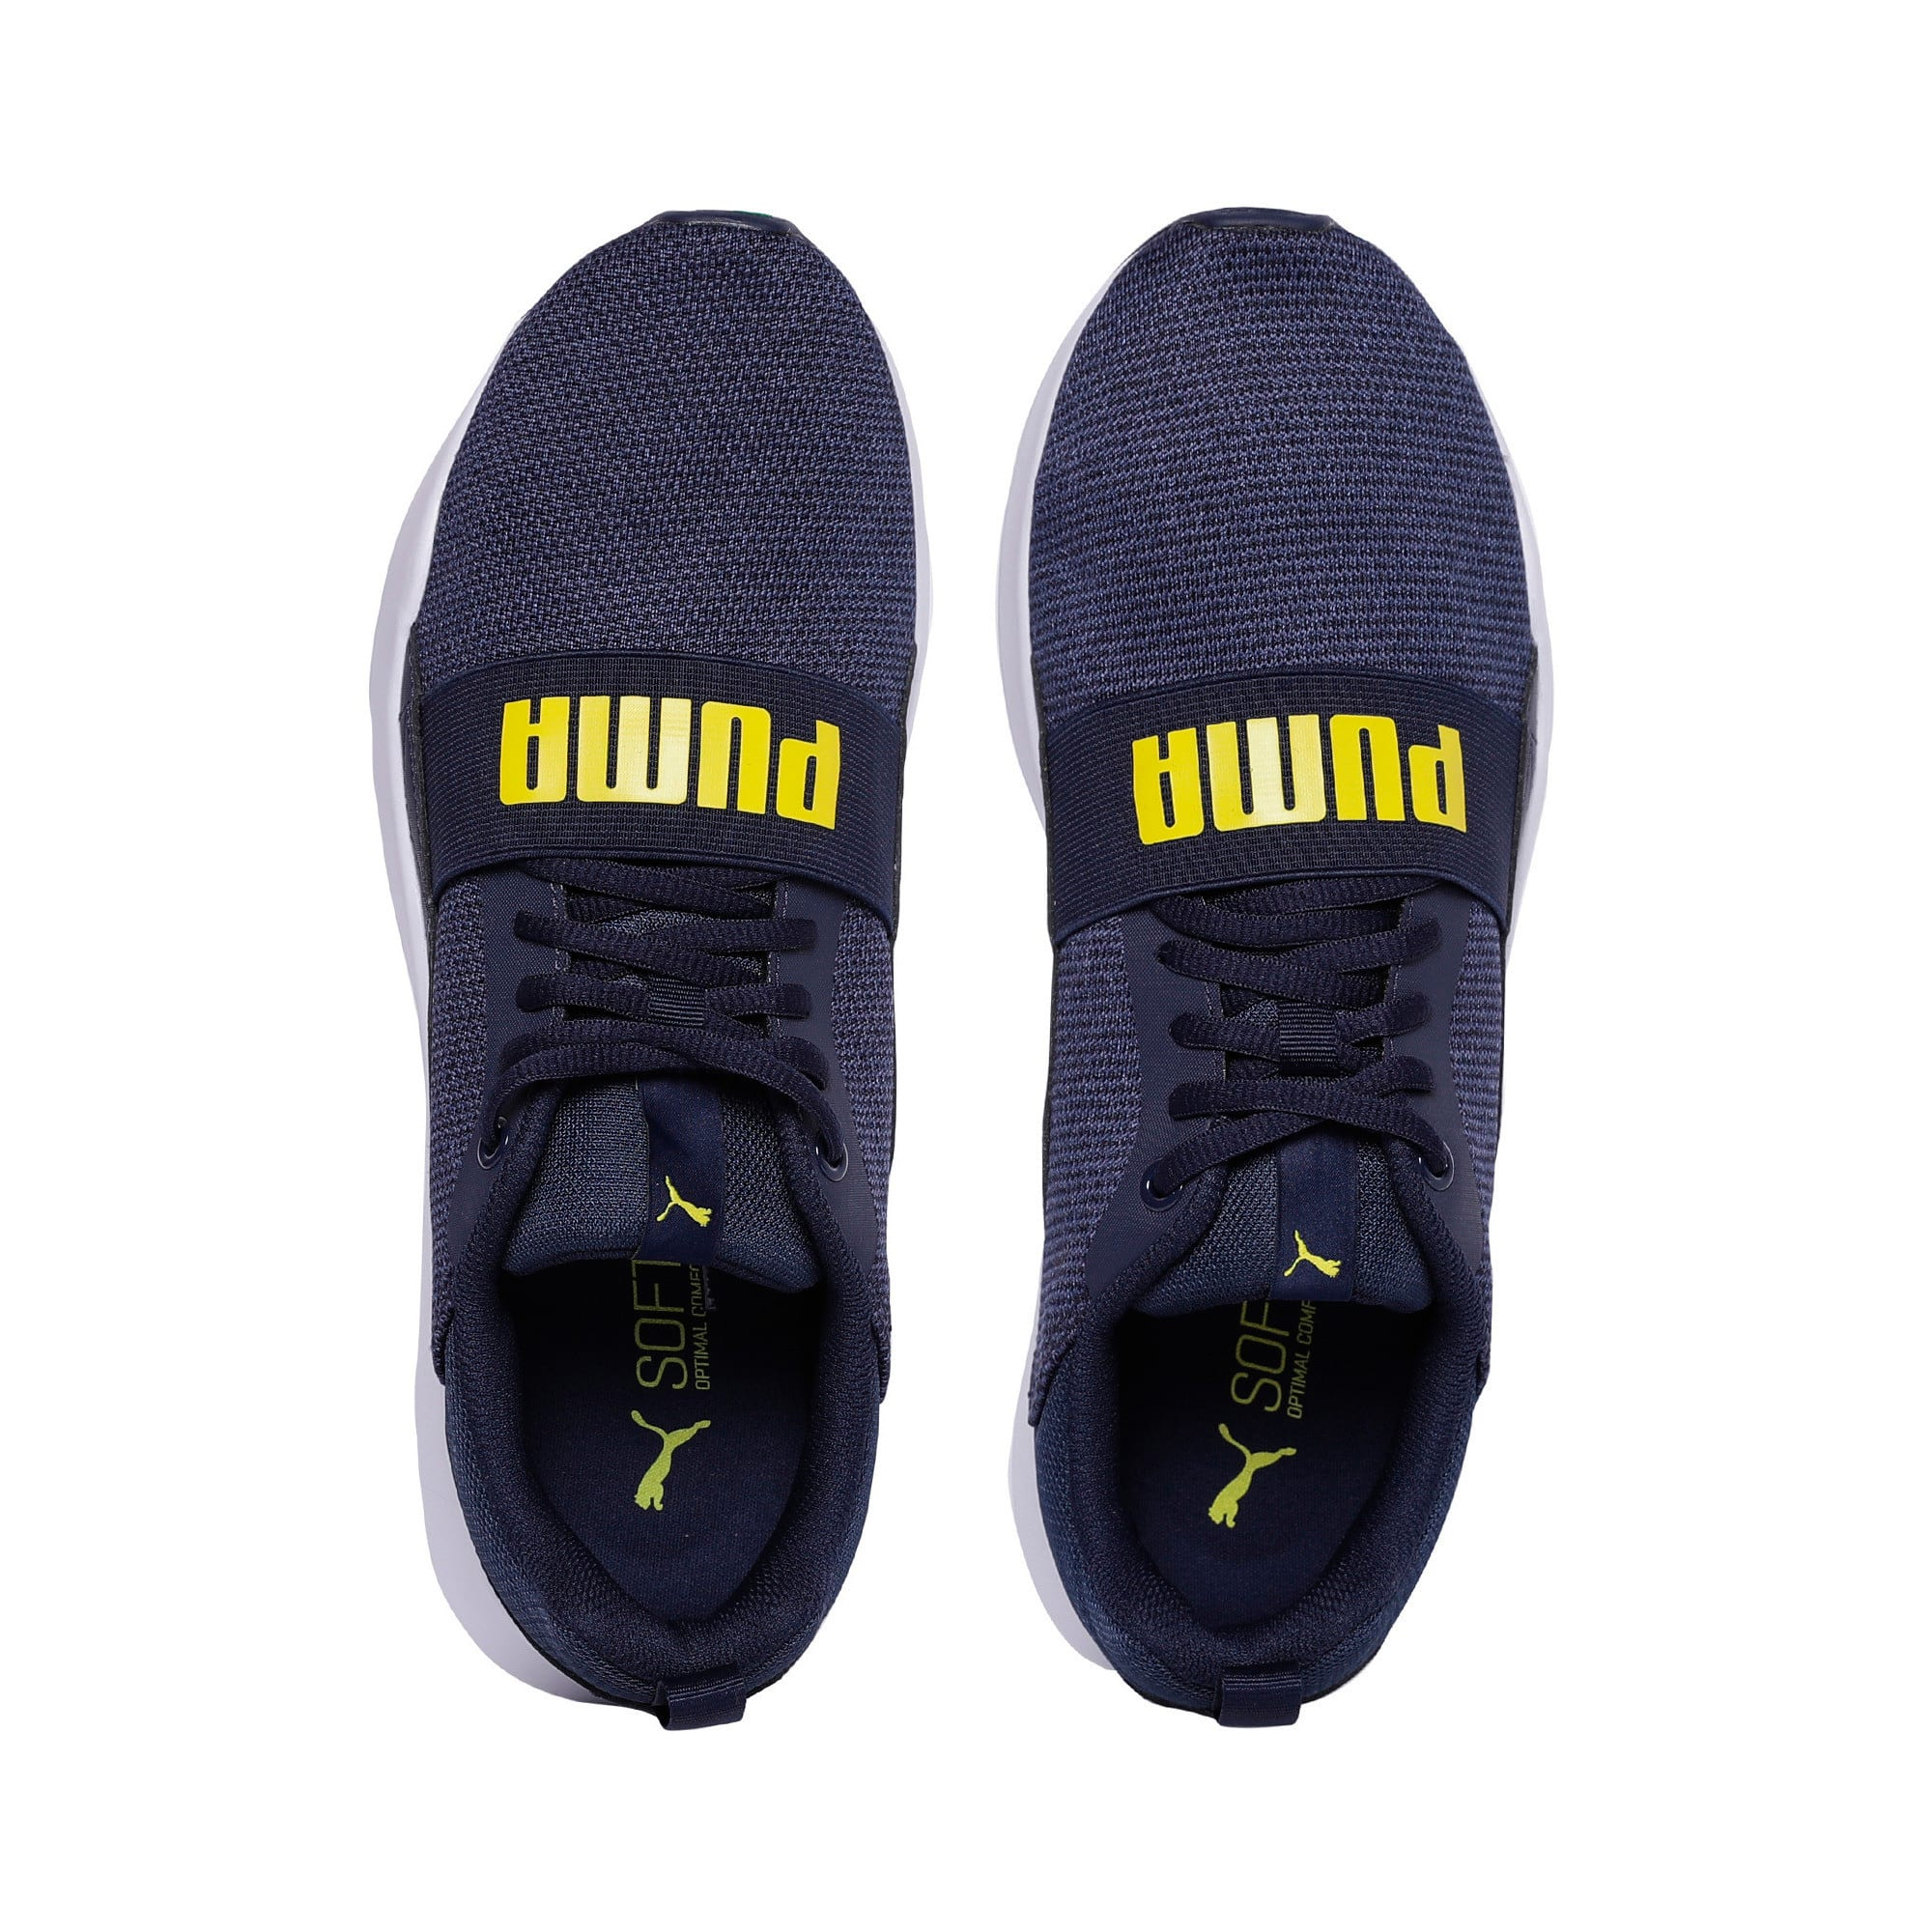 Thumbnail 6 of Wired Knit Trainers, Peacoat-Blazing Yellow, medium-IND